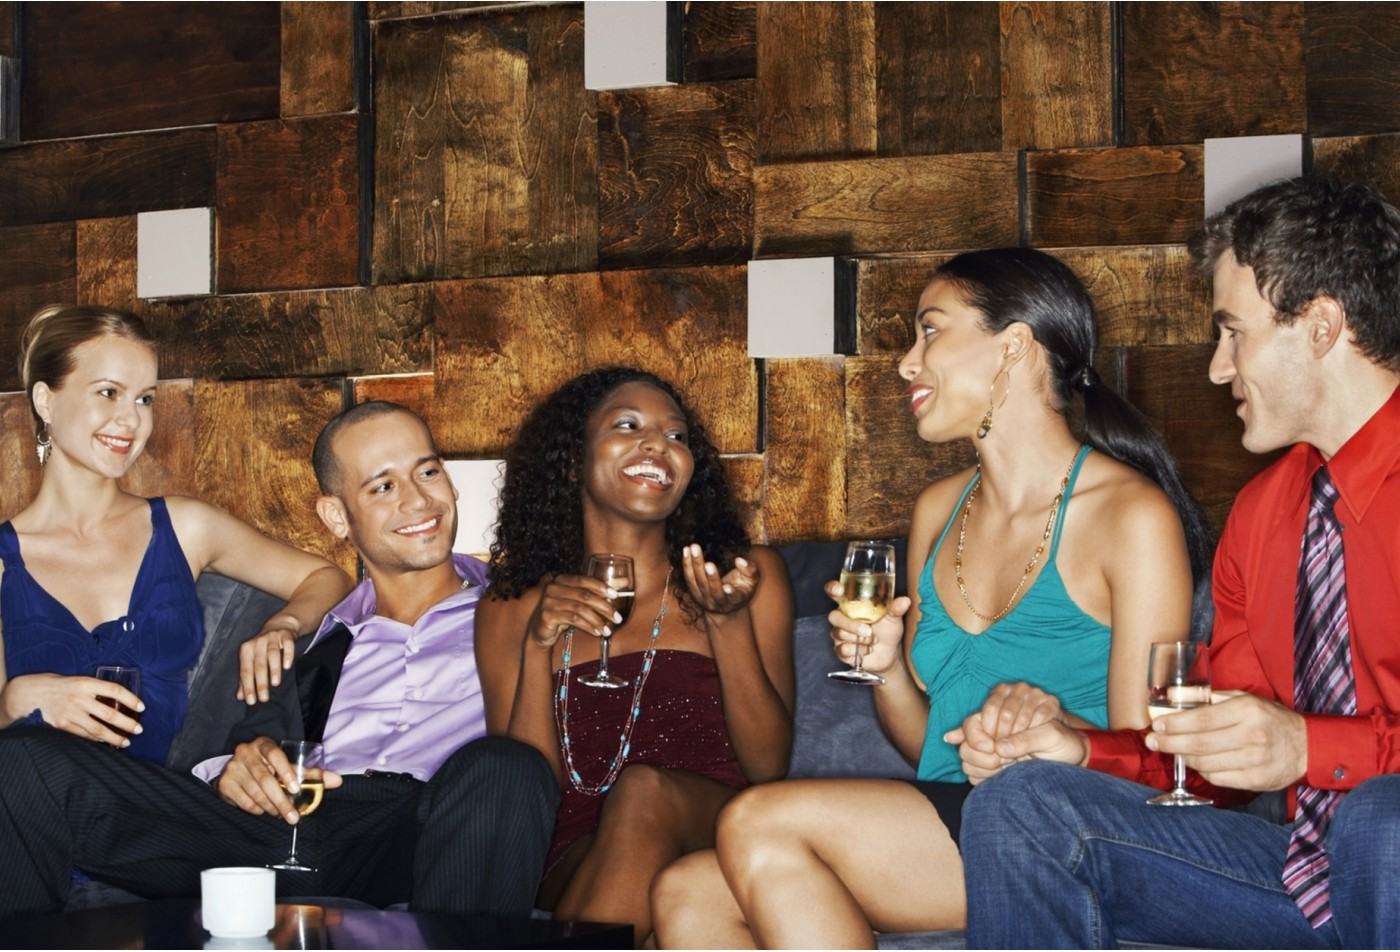 A group of couples enjoying the night out drinking wine and laughing .